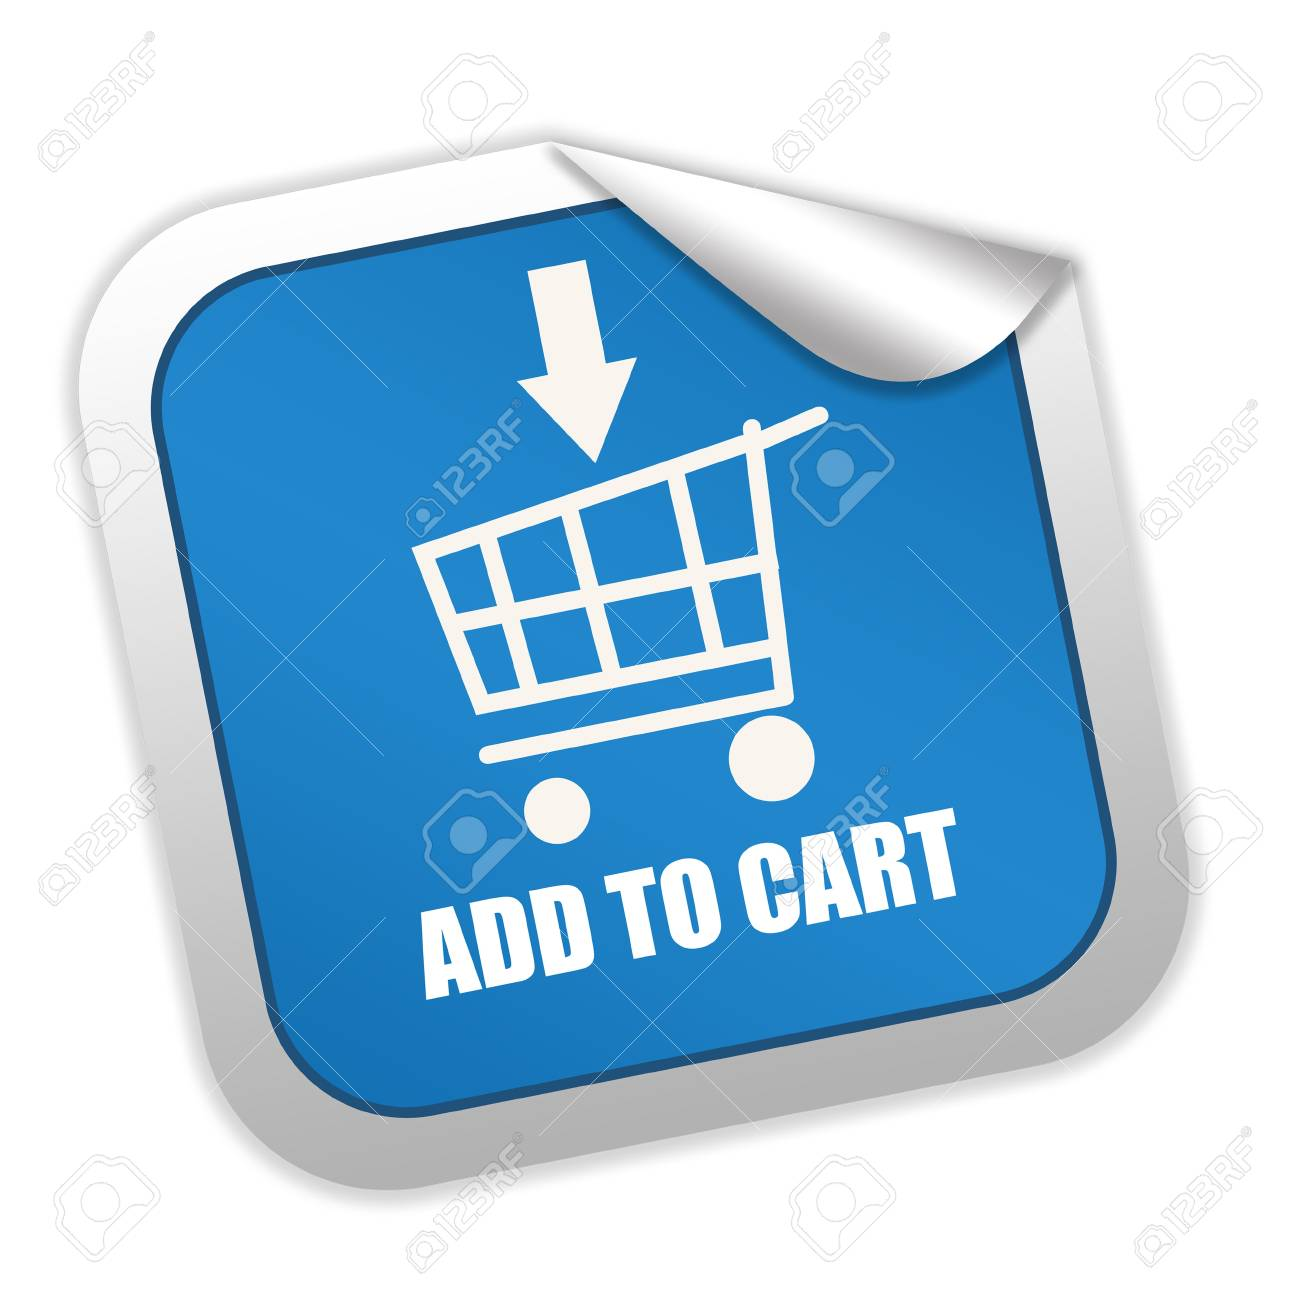 Add to cart label Stock Photo - 8885311